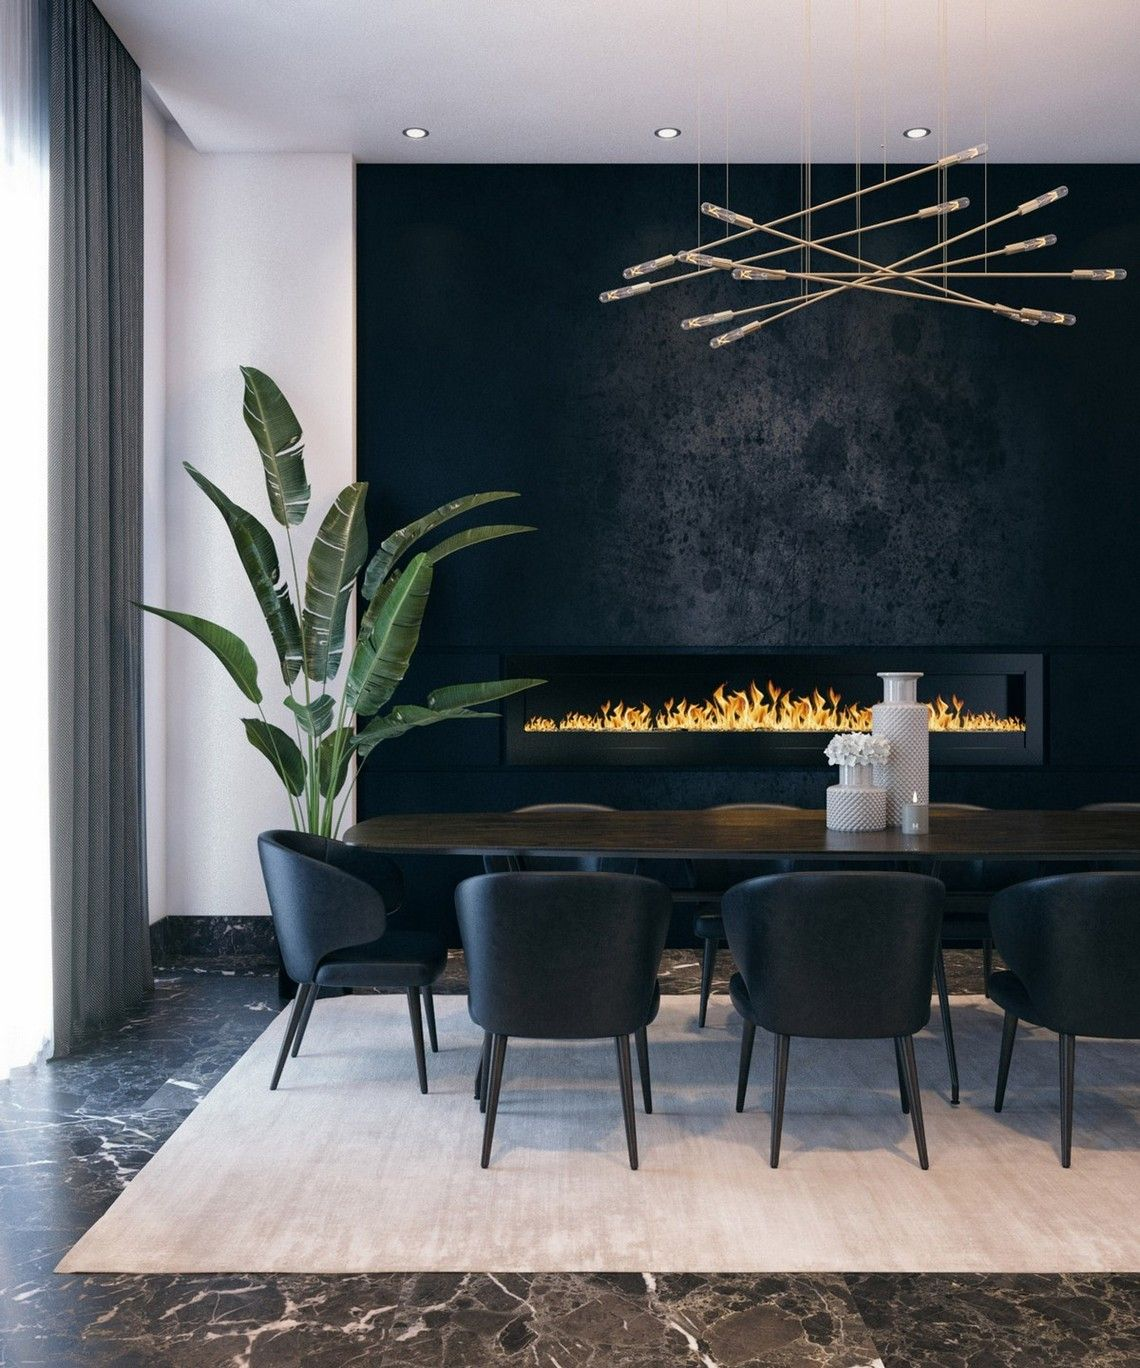 70 Modern Dining Room Ideas For 2019: Modern Dining Room Inspirations To Look Out For In 2019